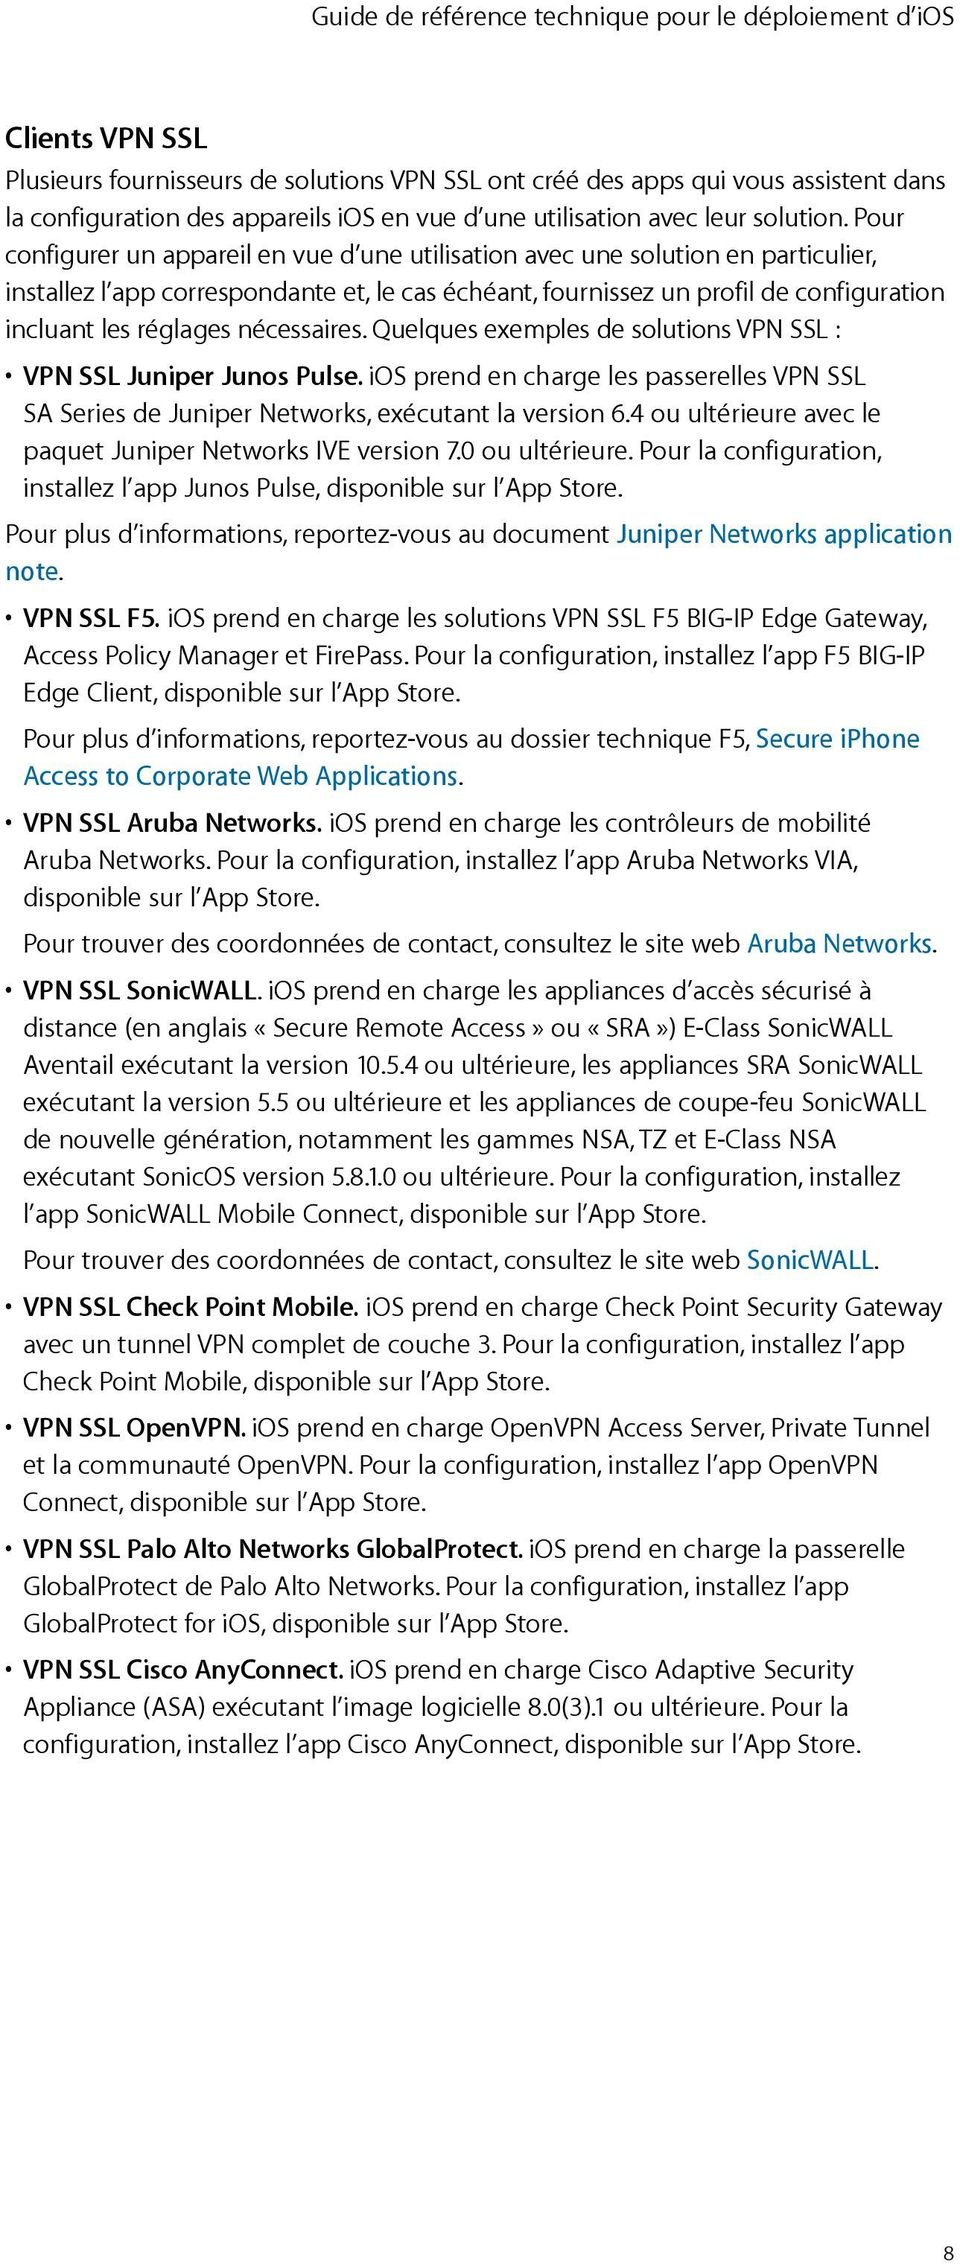 nécessaires. Quelques exemples de solutions VPN SSL : VPN SSL Juniper Junos Pulse. ios prend en charge les passerelles VPN SSL SA Series de Juniper Networks, exécutant la version 6.